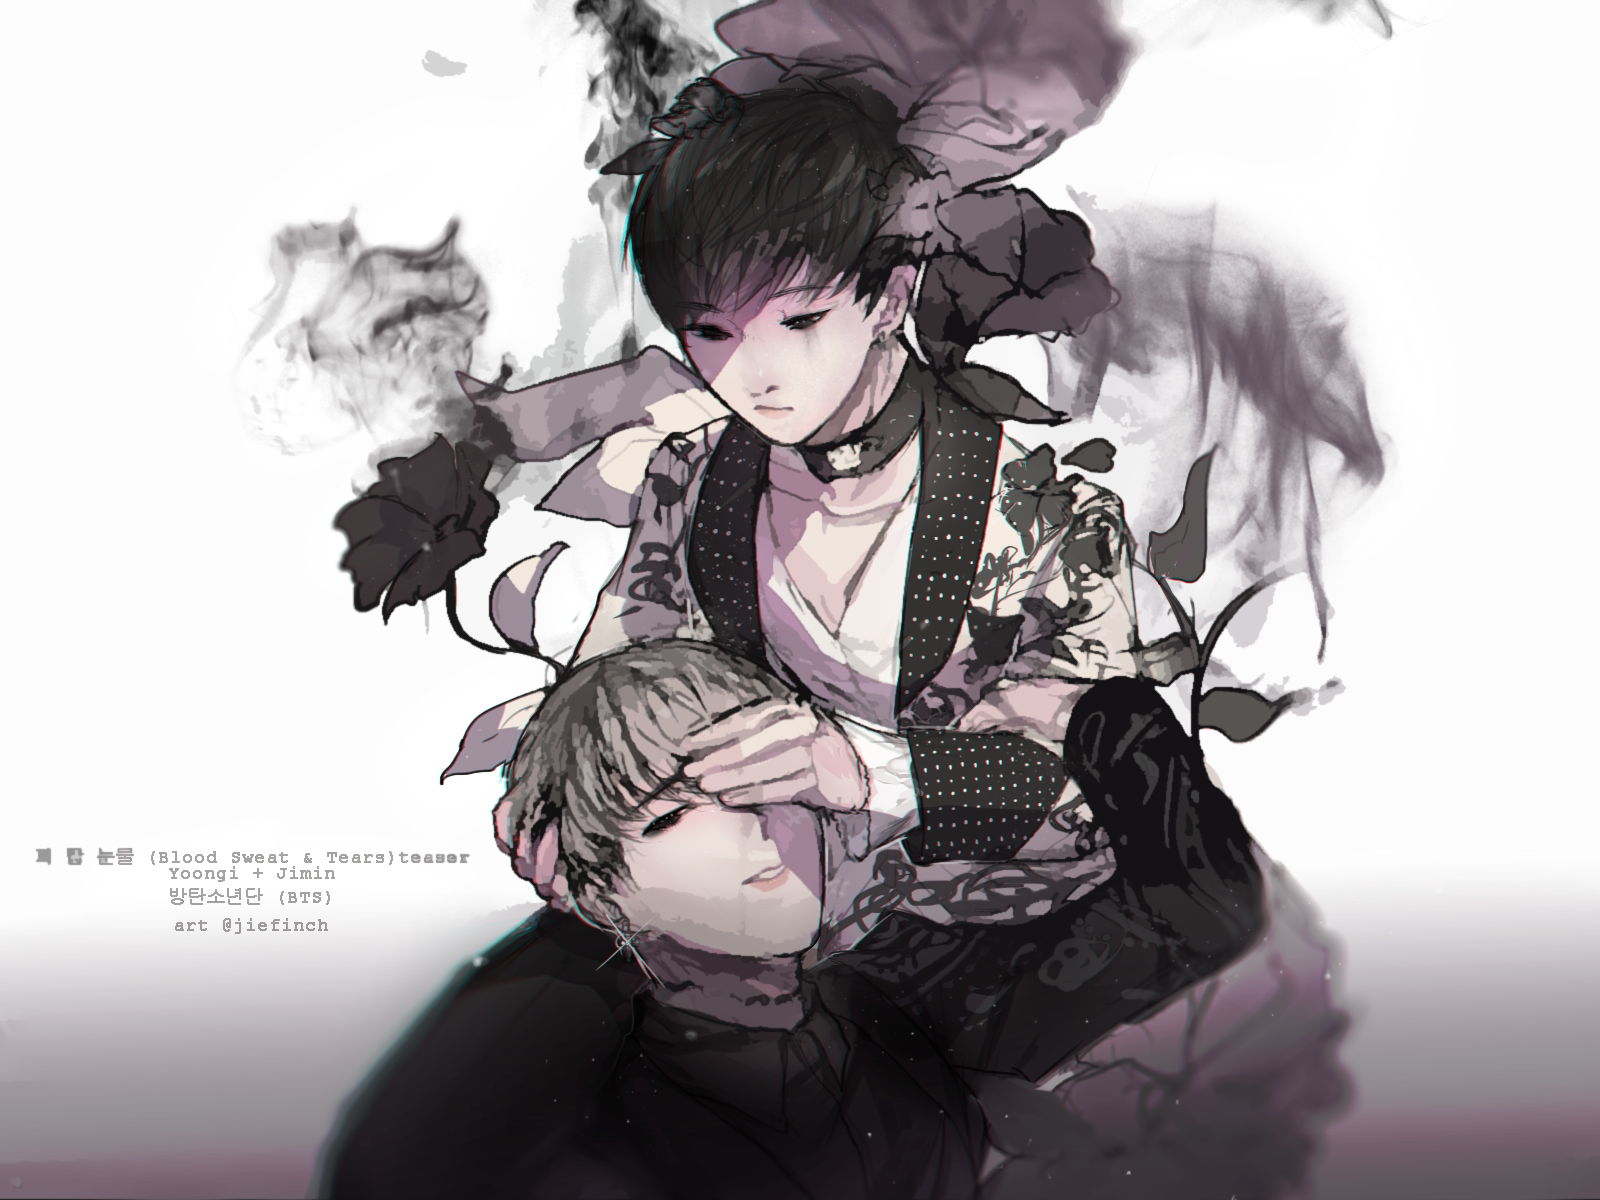 BTS K pop Wallpaper 2302648 Zerochan Anime Image Board